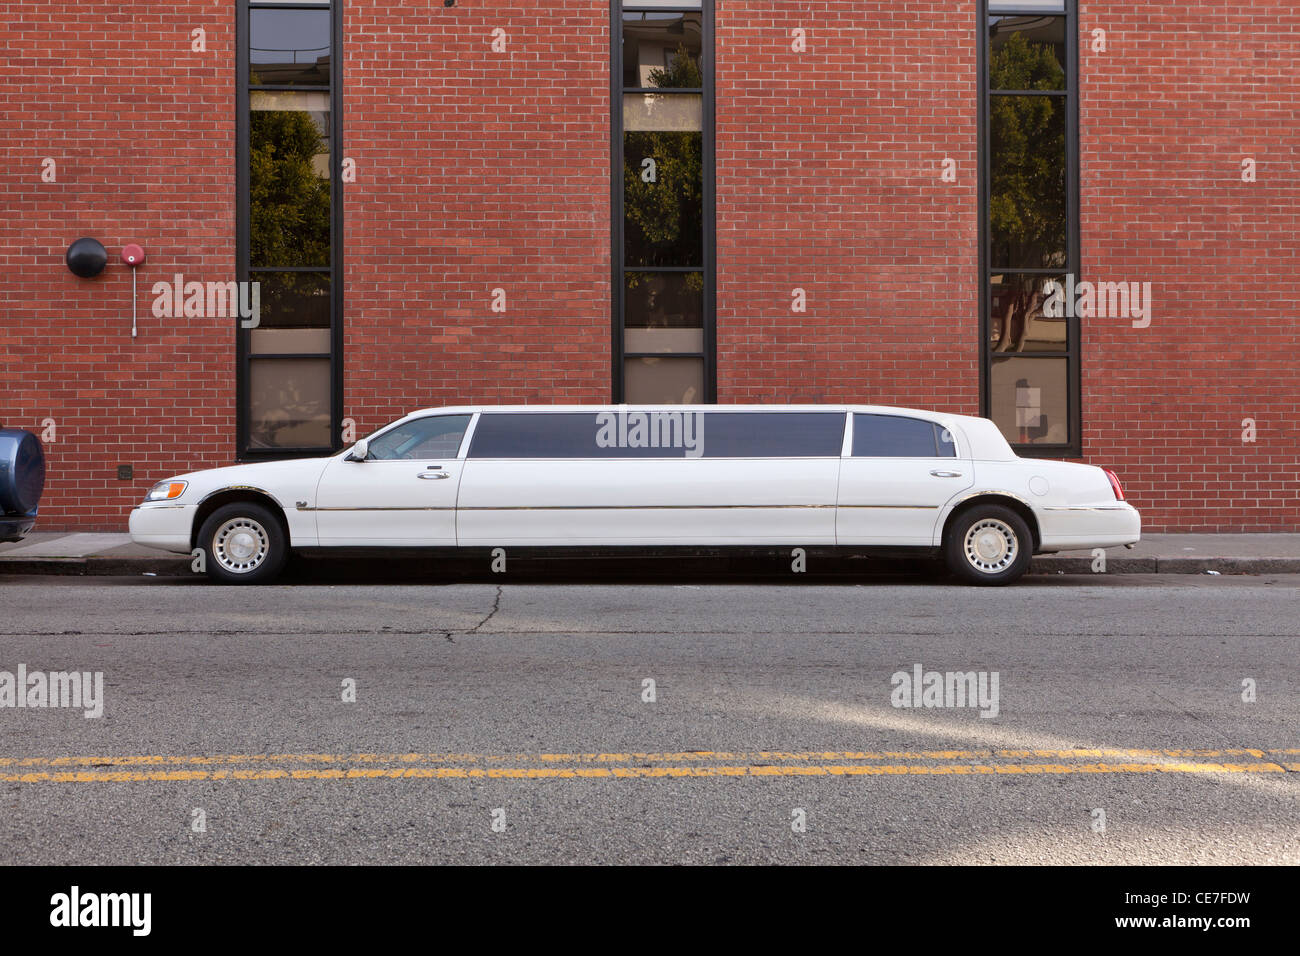 White limousine parked next to building - USA - Stock Image